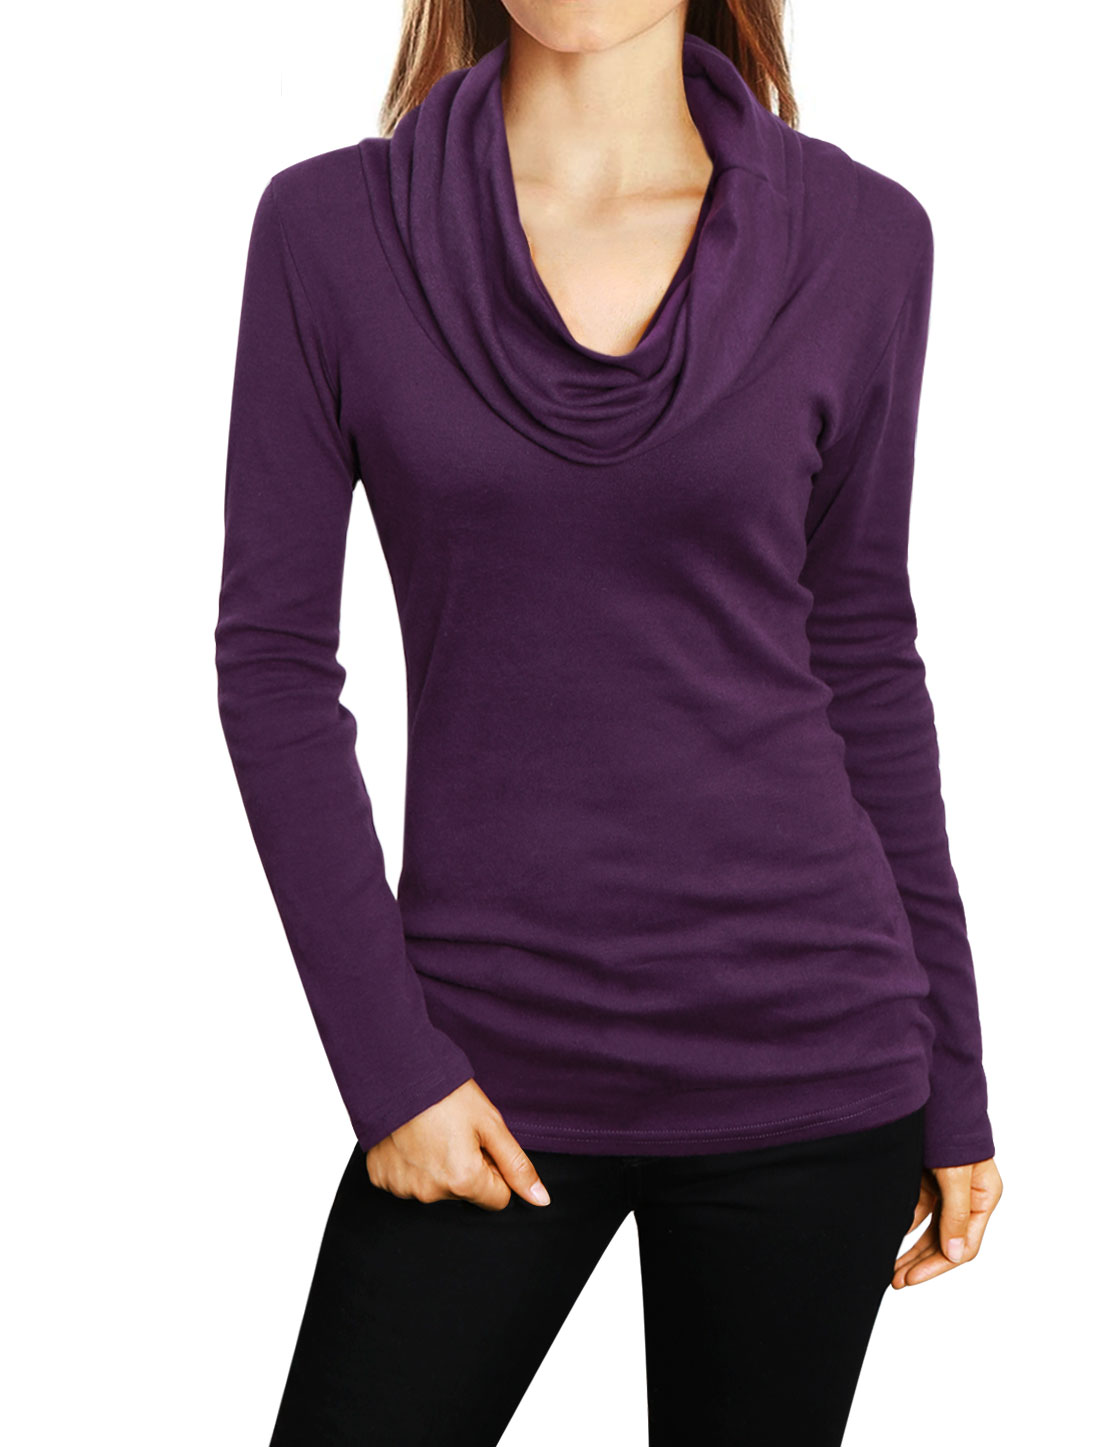 Ladies Cowl Neck Long Sleeves Slim Fit Casual Blouse Purple M